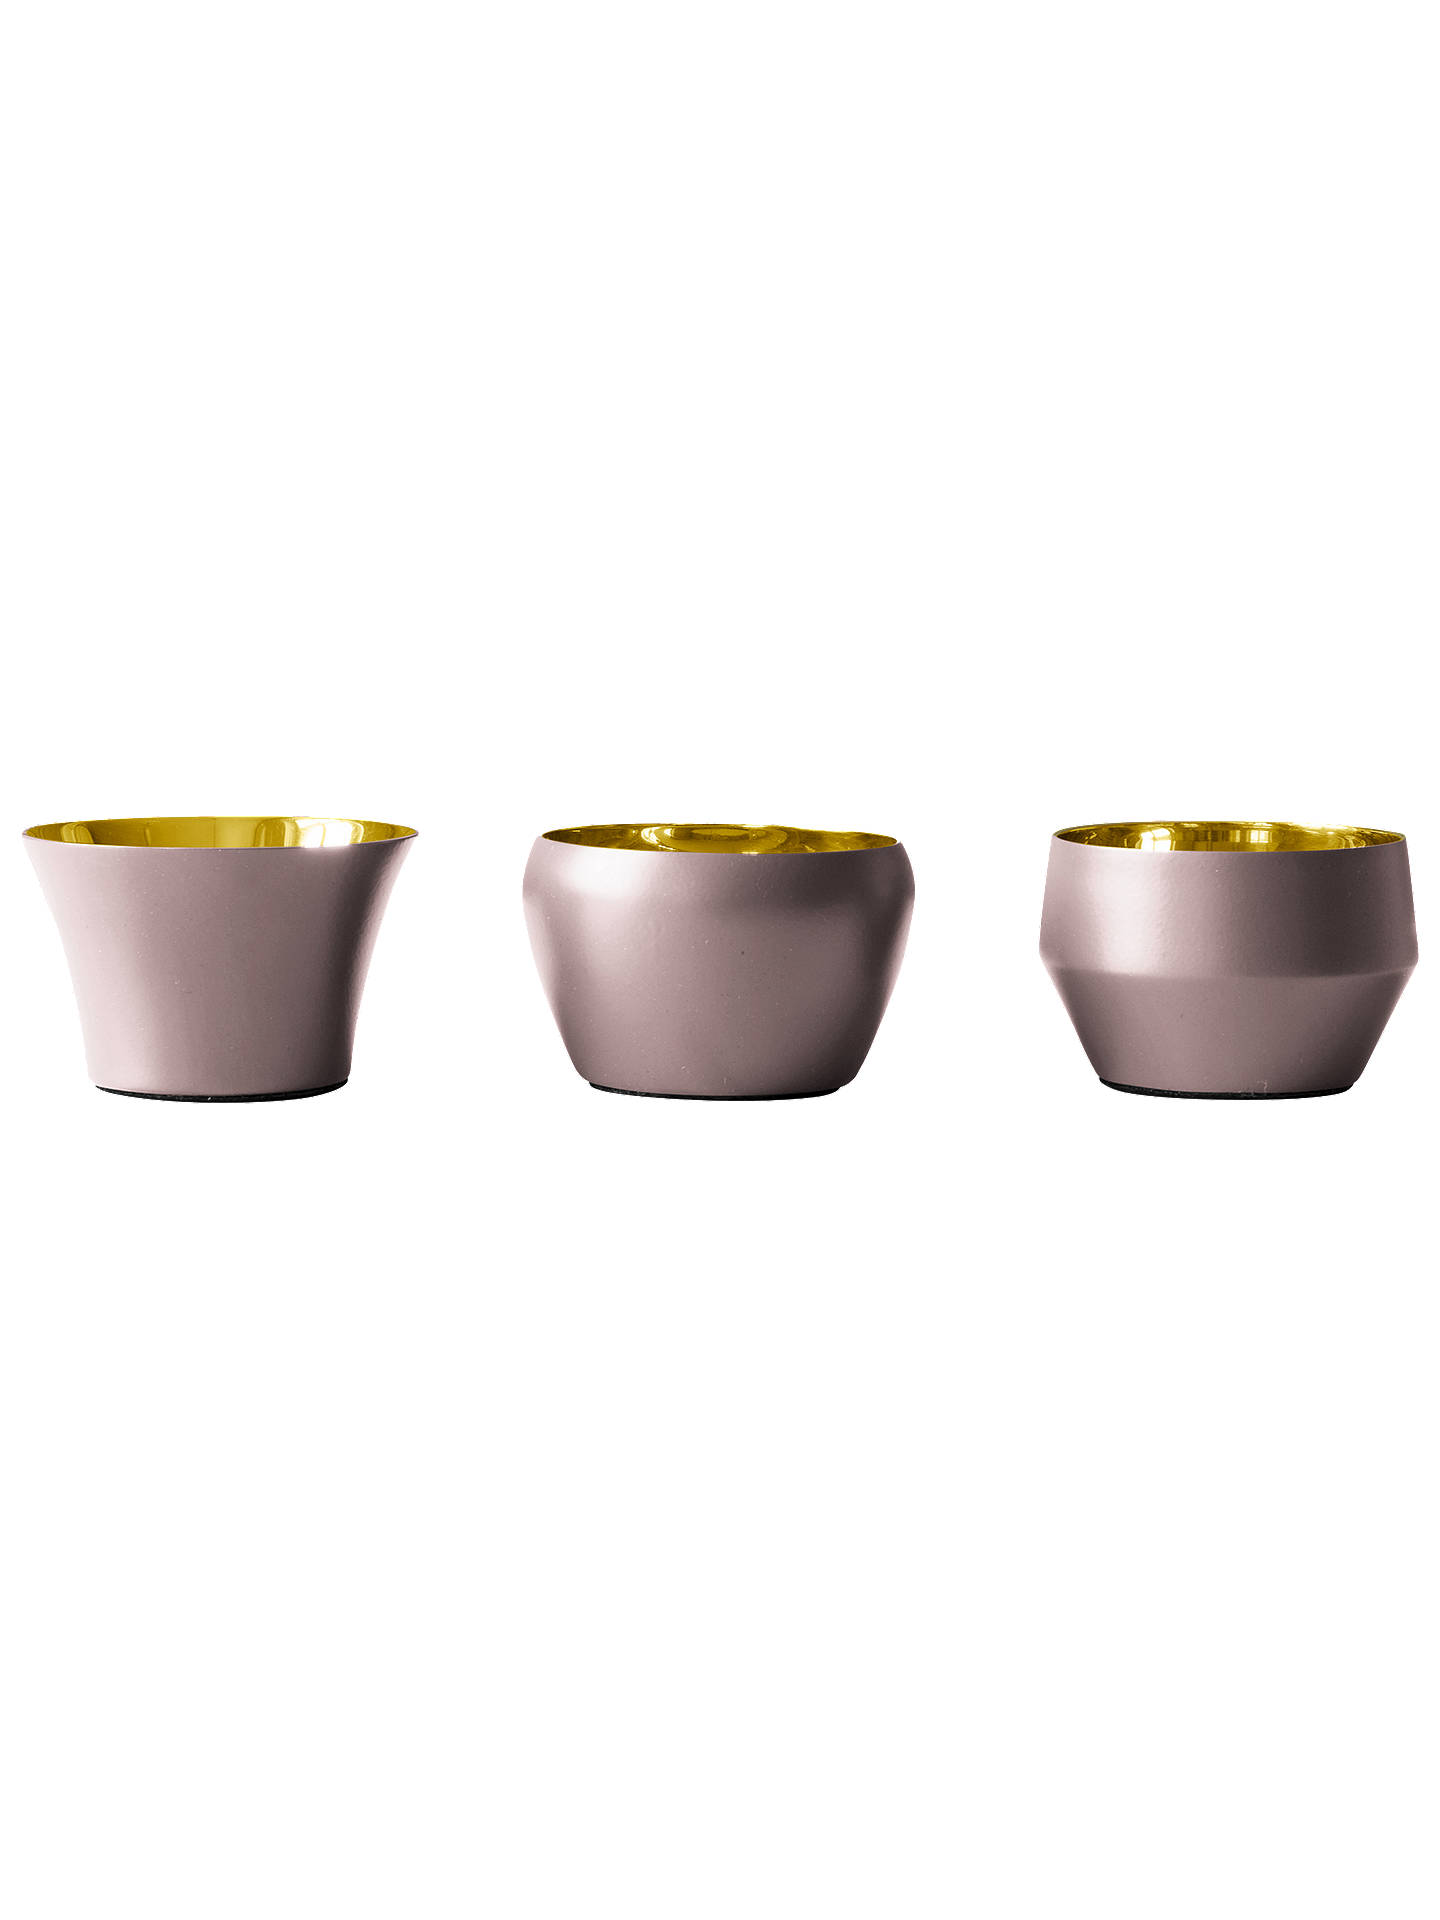 BuySkultuna Kin Tealight Holders, Set of 3, Pink Online at johnlewis.com